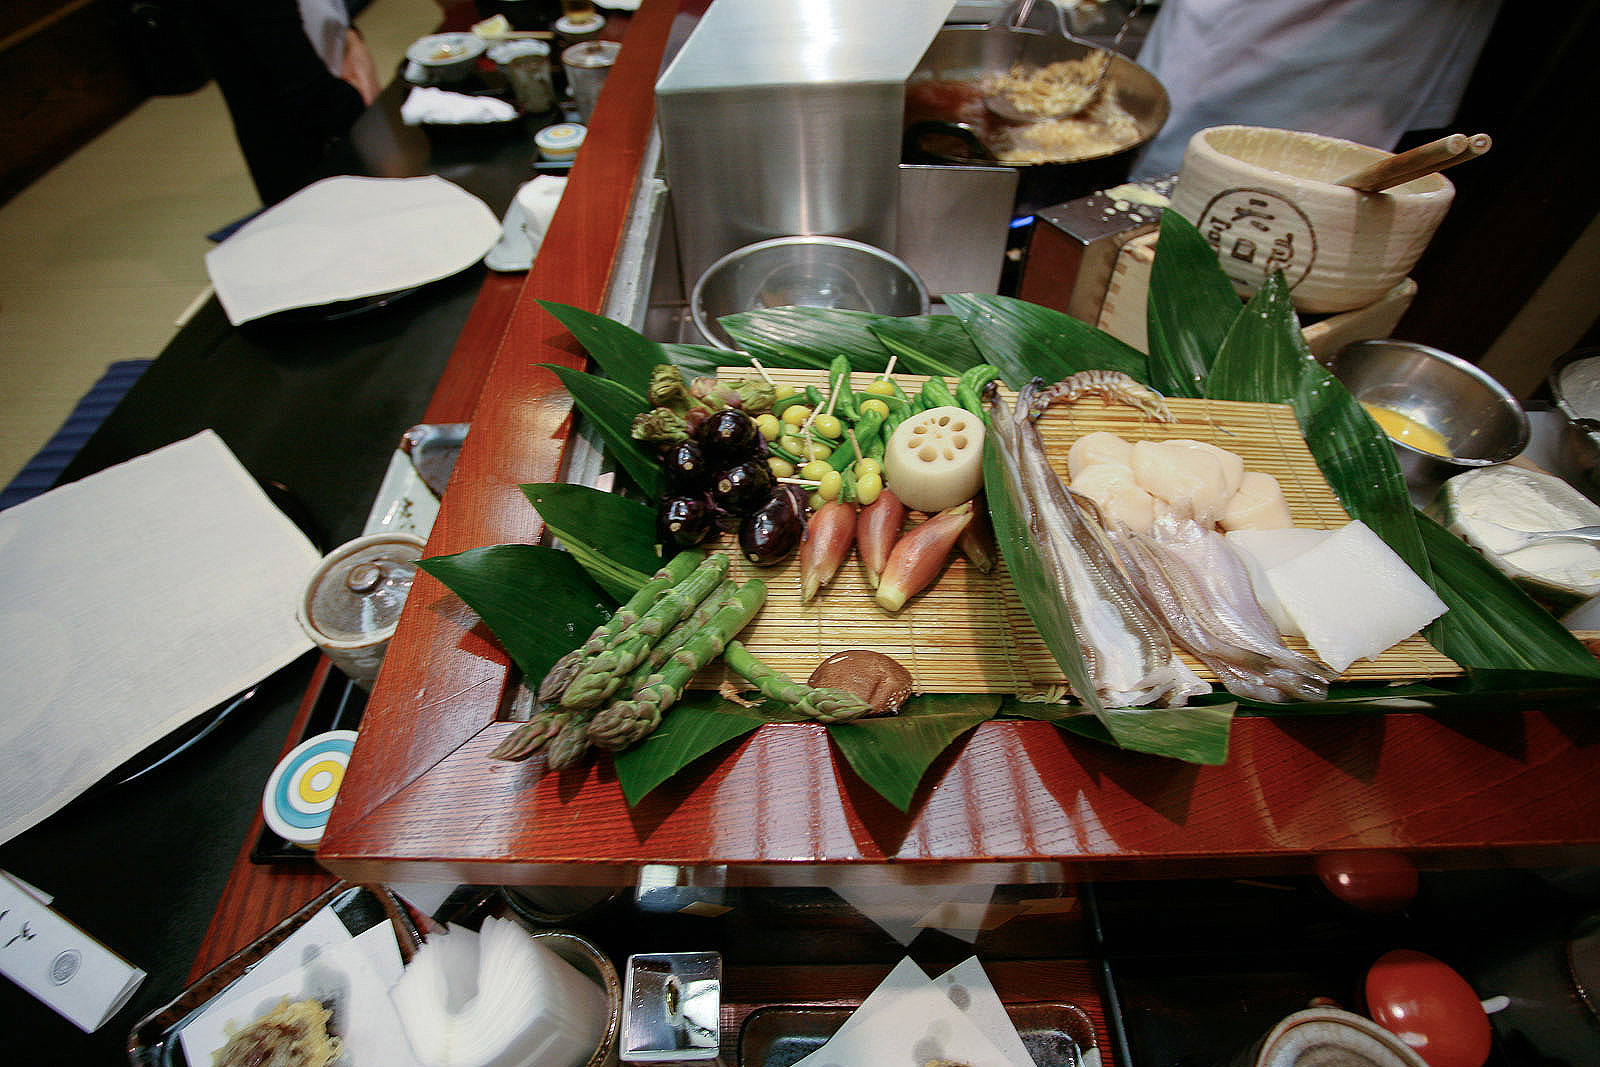 Tenichi, Ginza, Tokyo - Assorted vegetables ready for frying